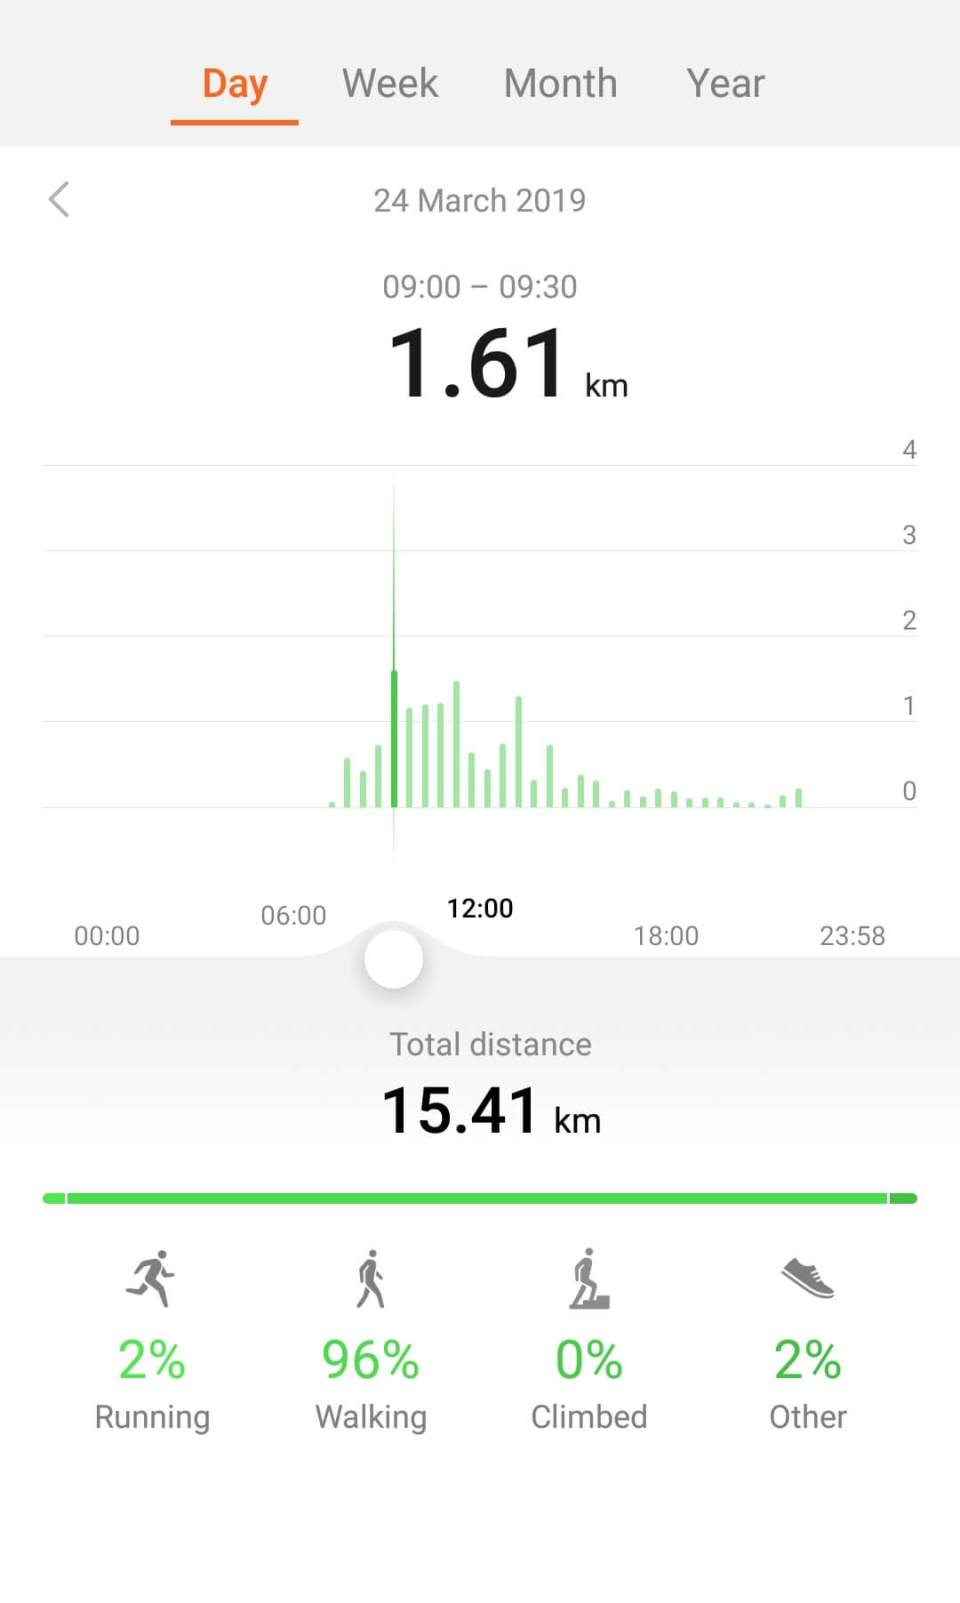 Distance covered on Solo Manali trip